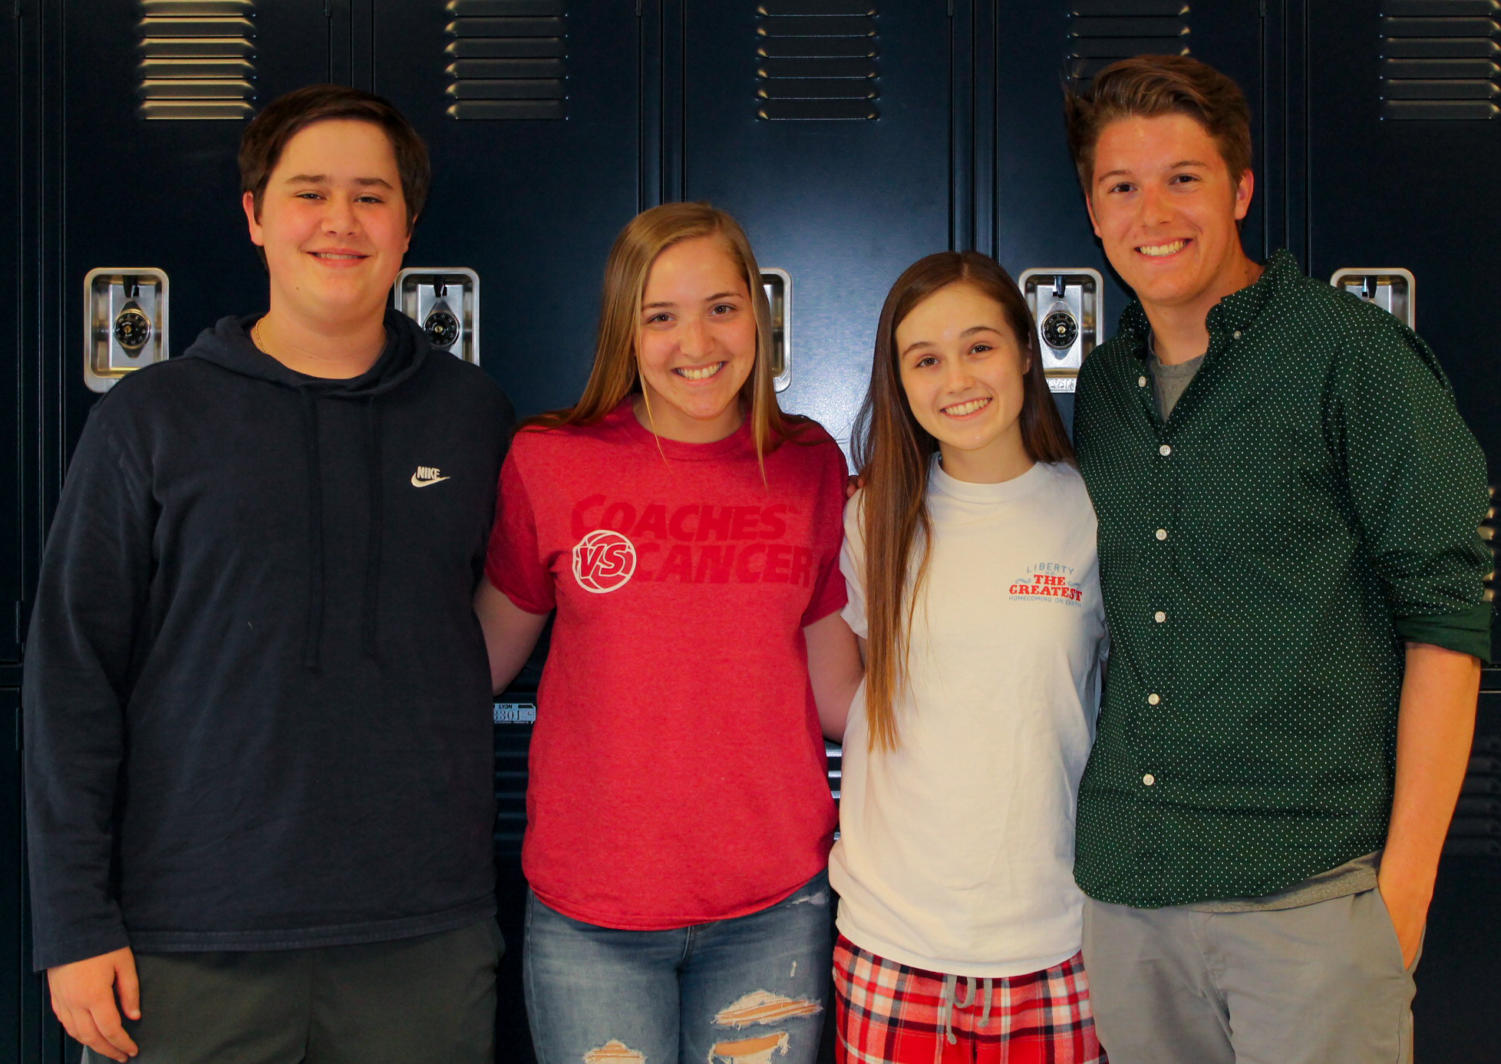 Left to right: Sam Ardery and Hannah Behlmann are running mates against Aimee Weber and Zach Kerns. The group has worked together in StuCo throughout the year.